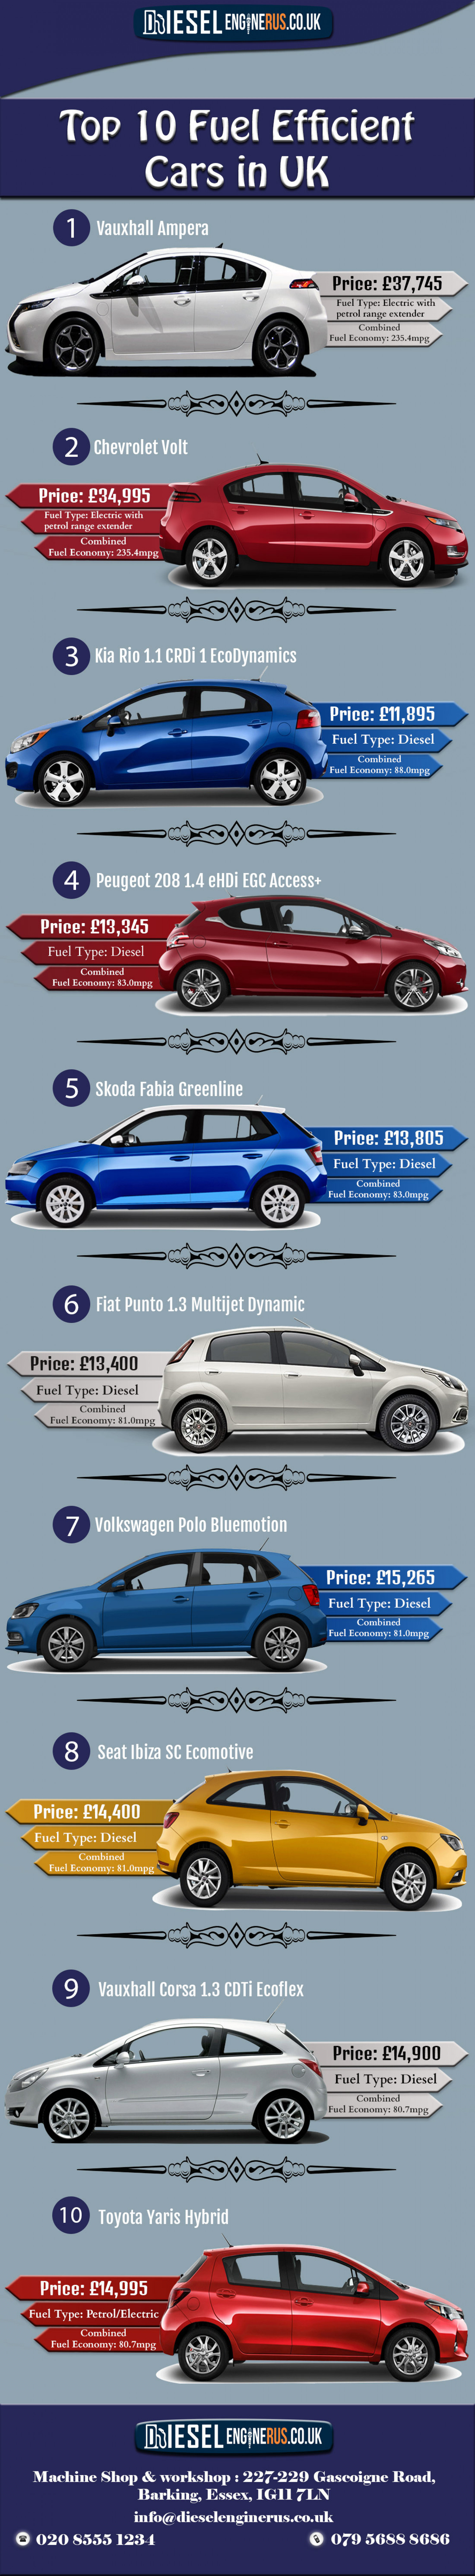 Top 10 Fuel Efficient Cars in UK Infographic